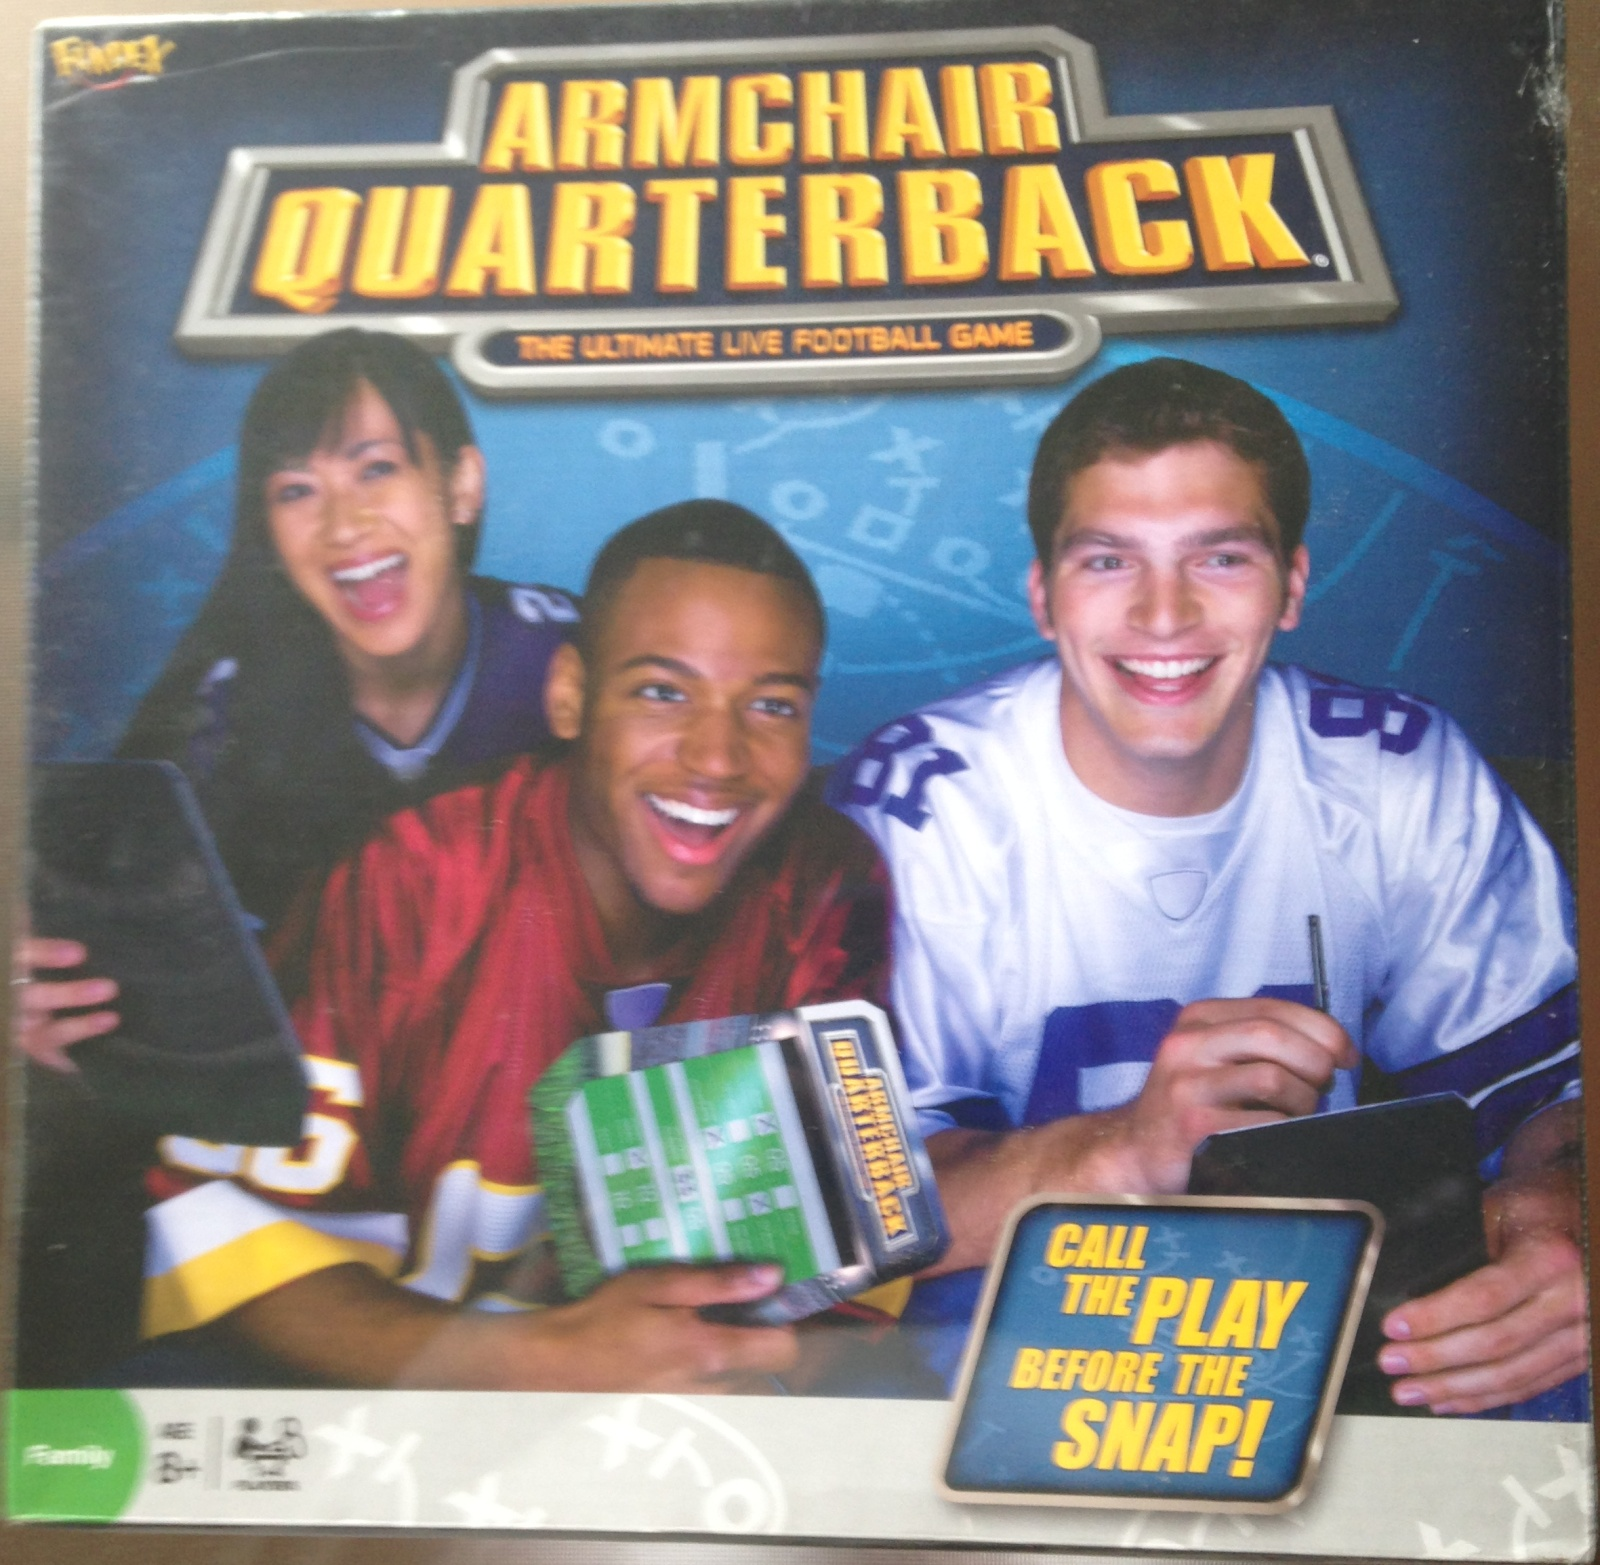 Armchair Quarterback The Ultimate Live Football Game